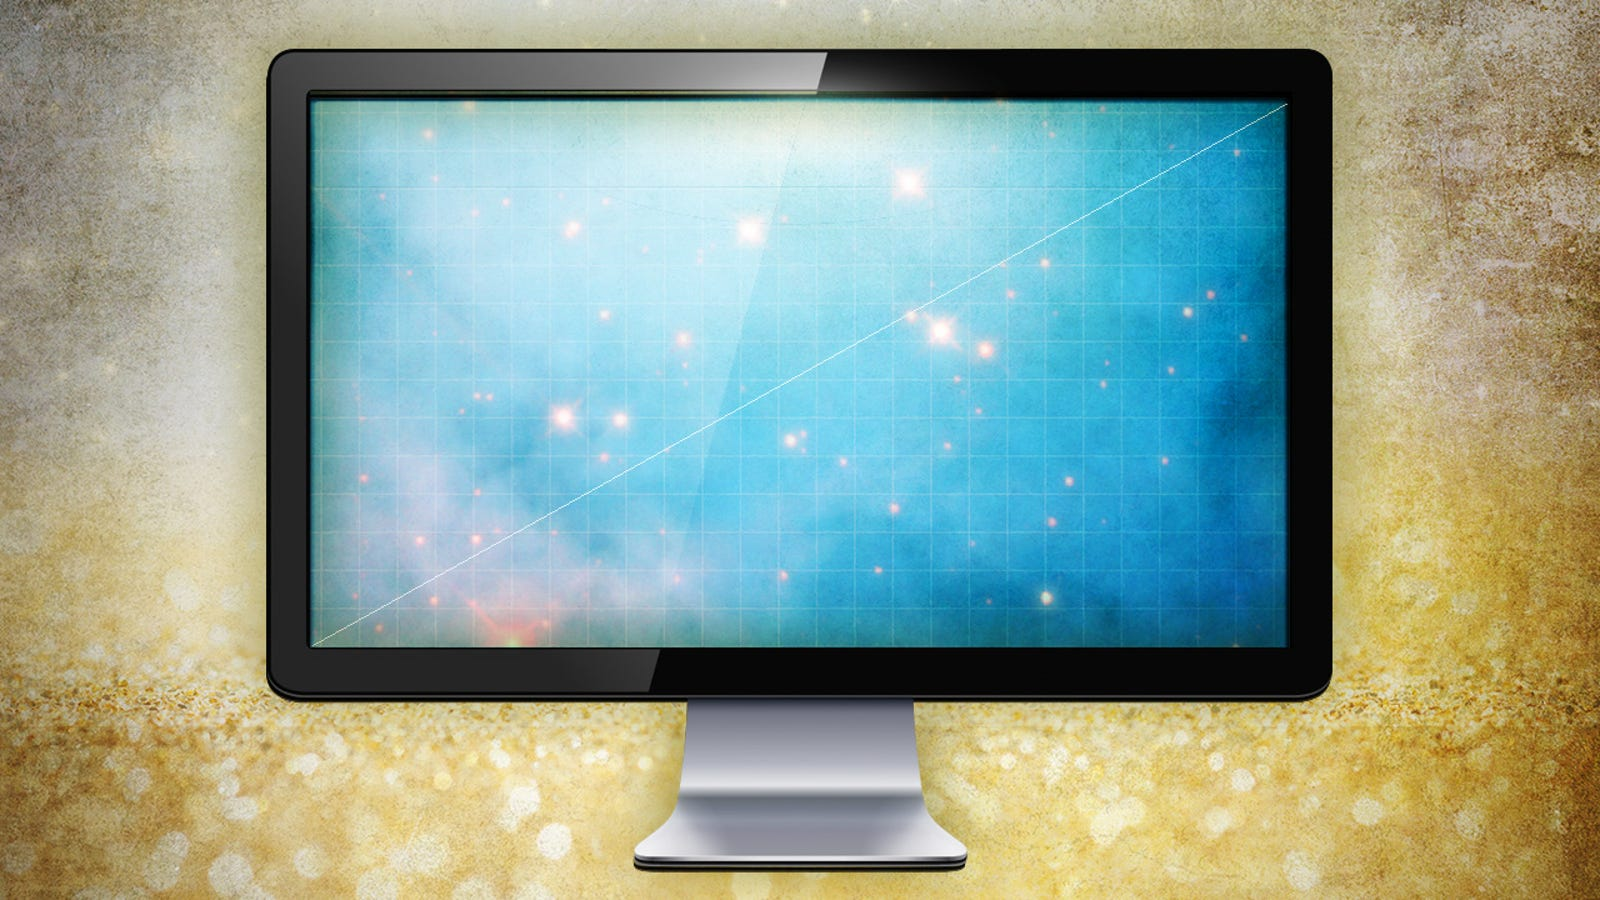 Top 10 Ways To Improve Your Monitor The Screen You Stare At All Day